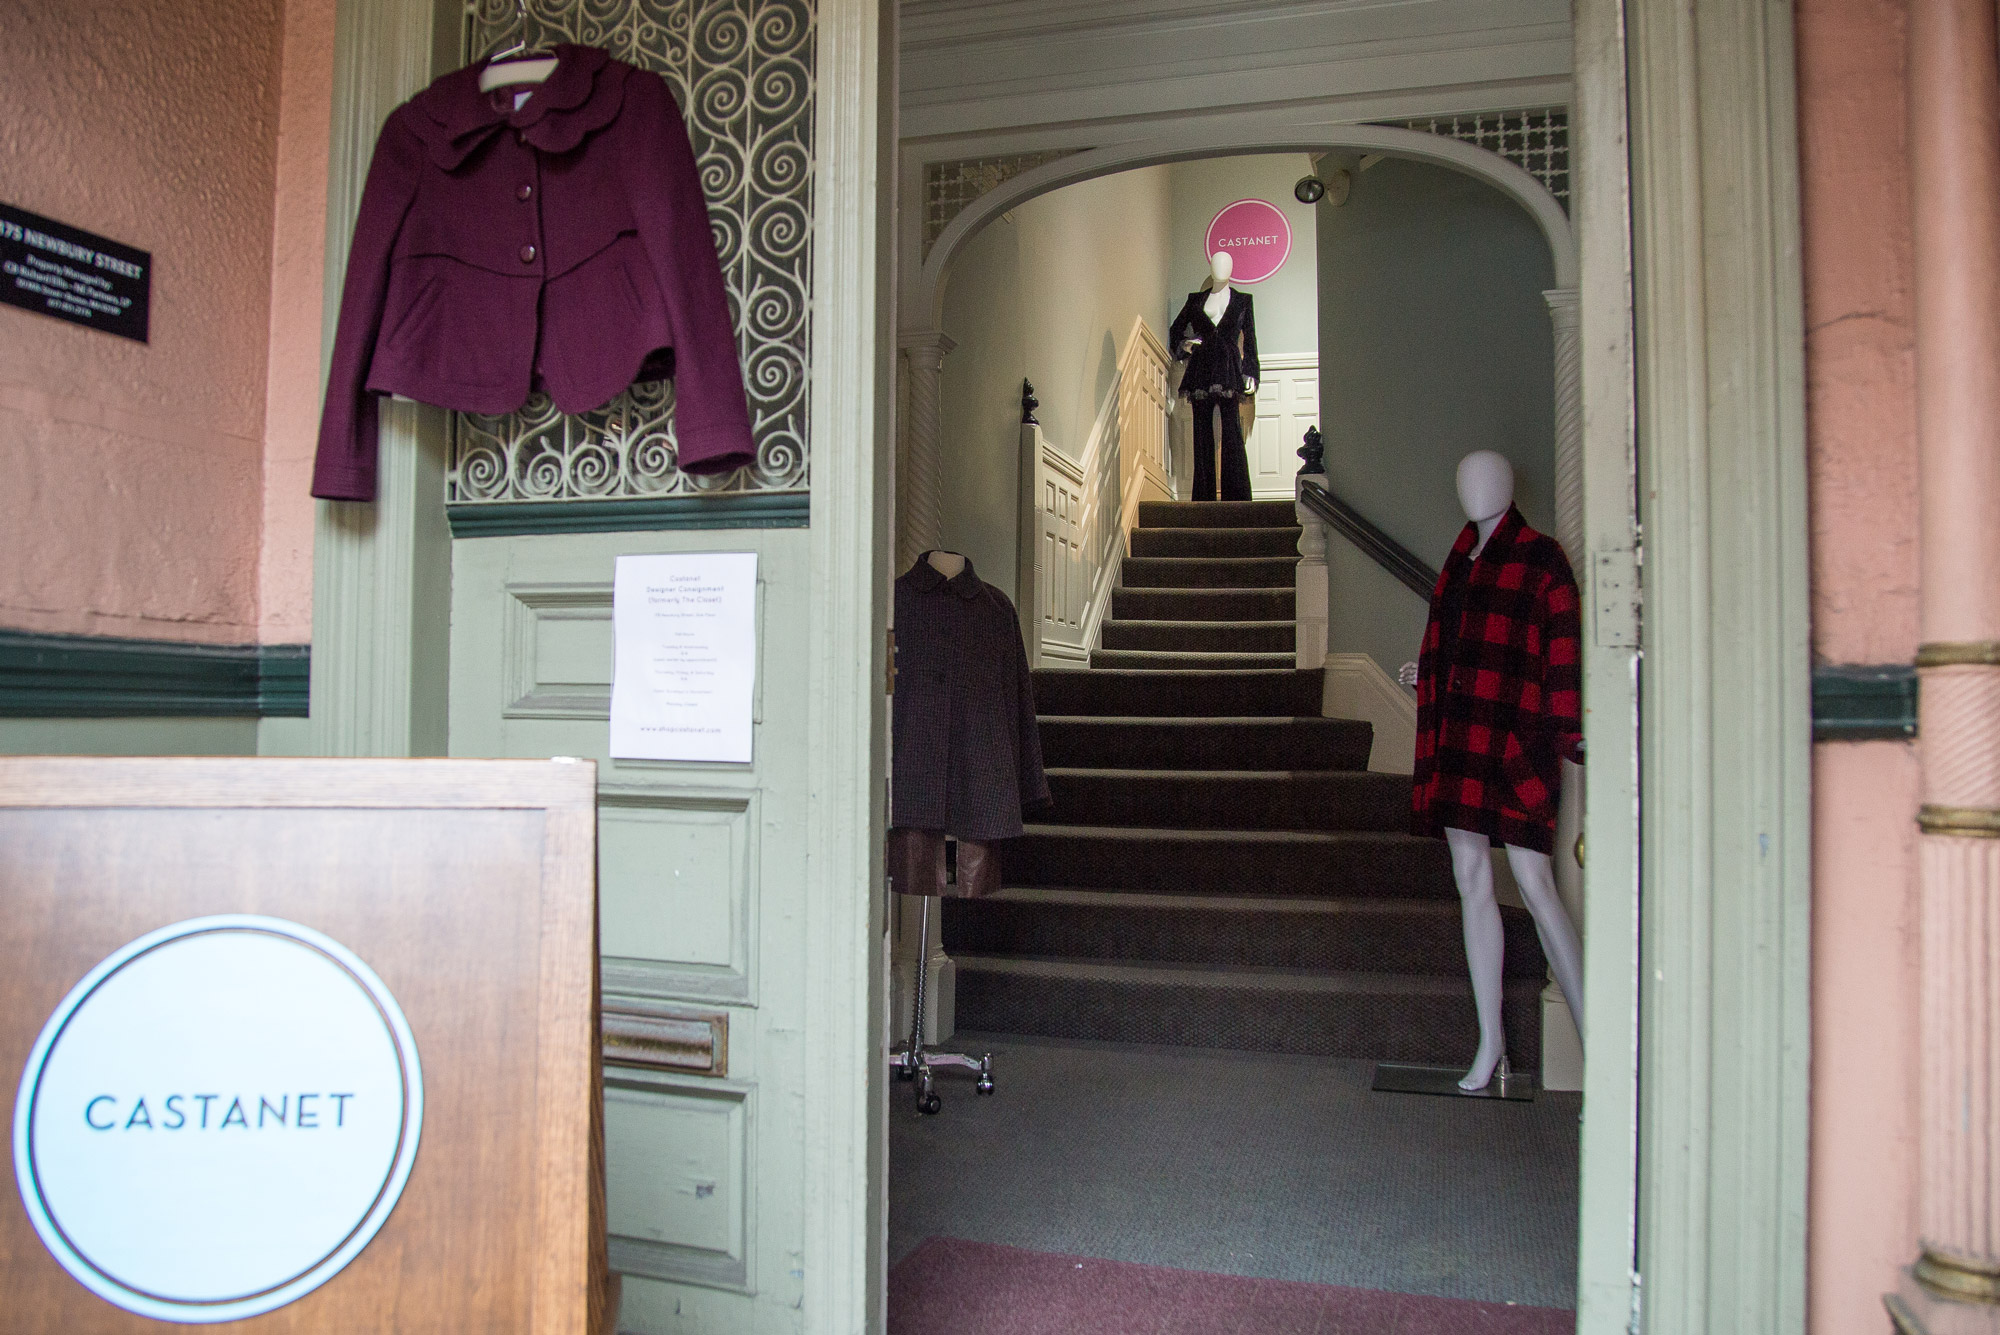 Stylish mannequins line the stairs leading up to Castanet